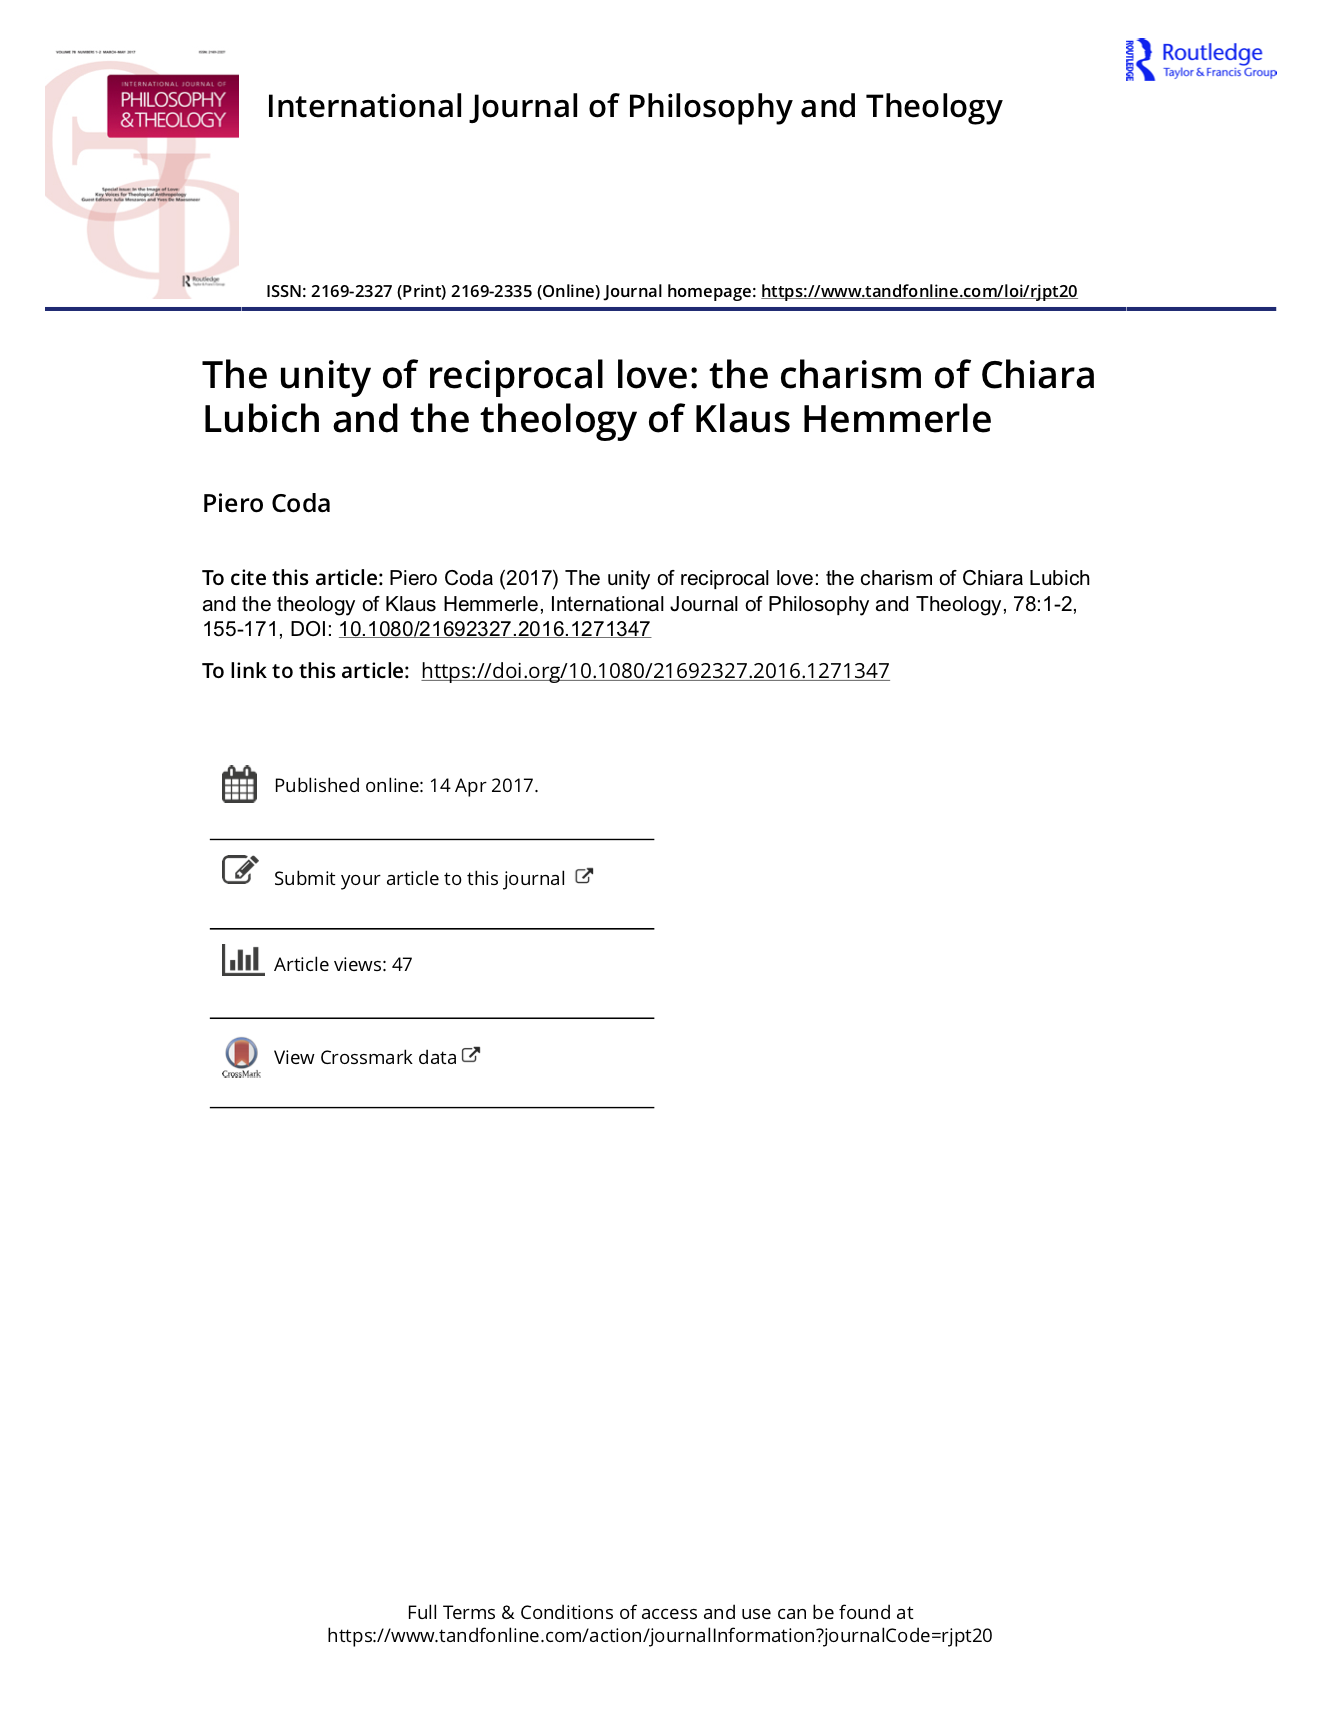 The unity of reciprocal love the charism of Chiara Lubich and the theology of Klaus Hemmerle-2.png